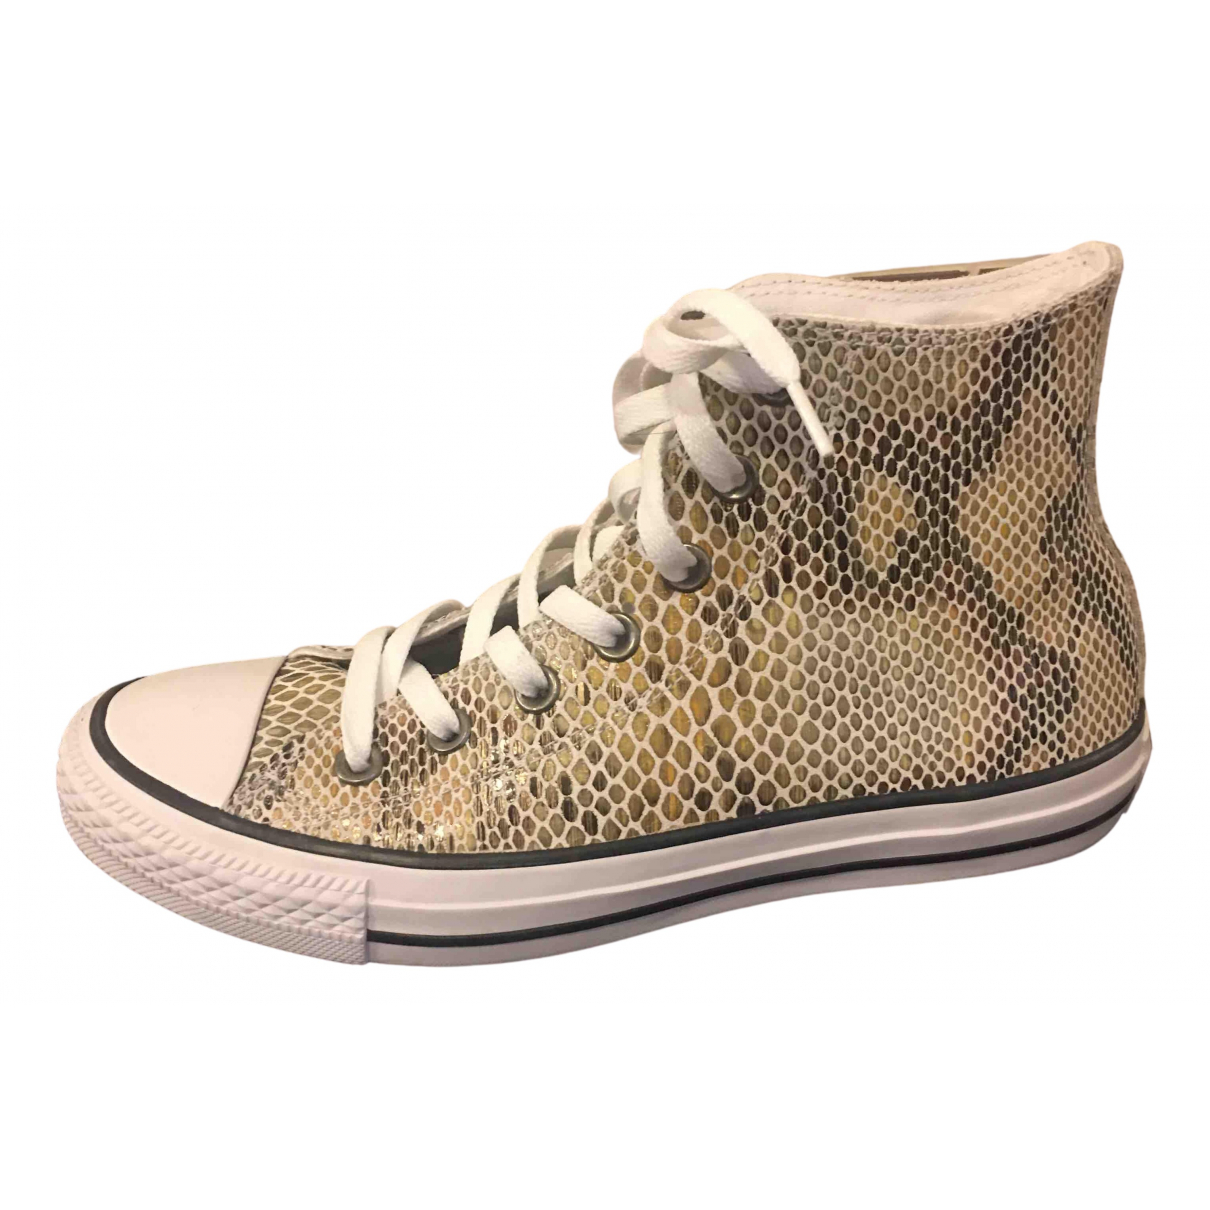 Converse N Leather Trainers for Women 7.5 US